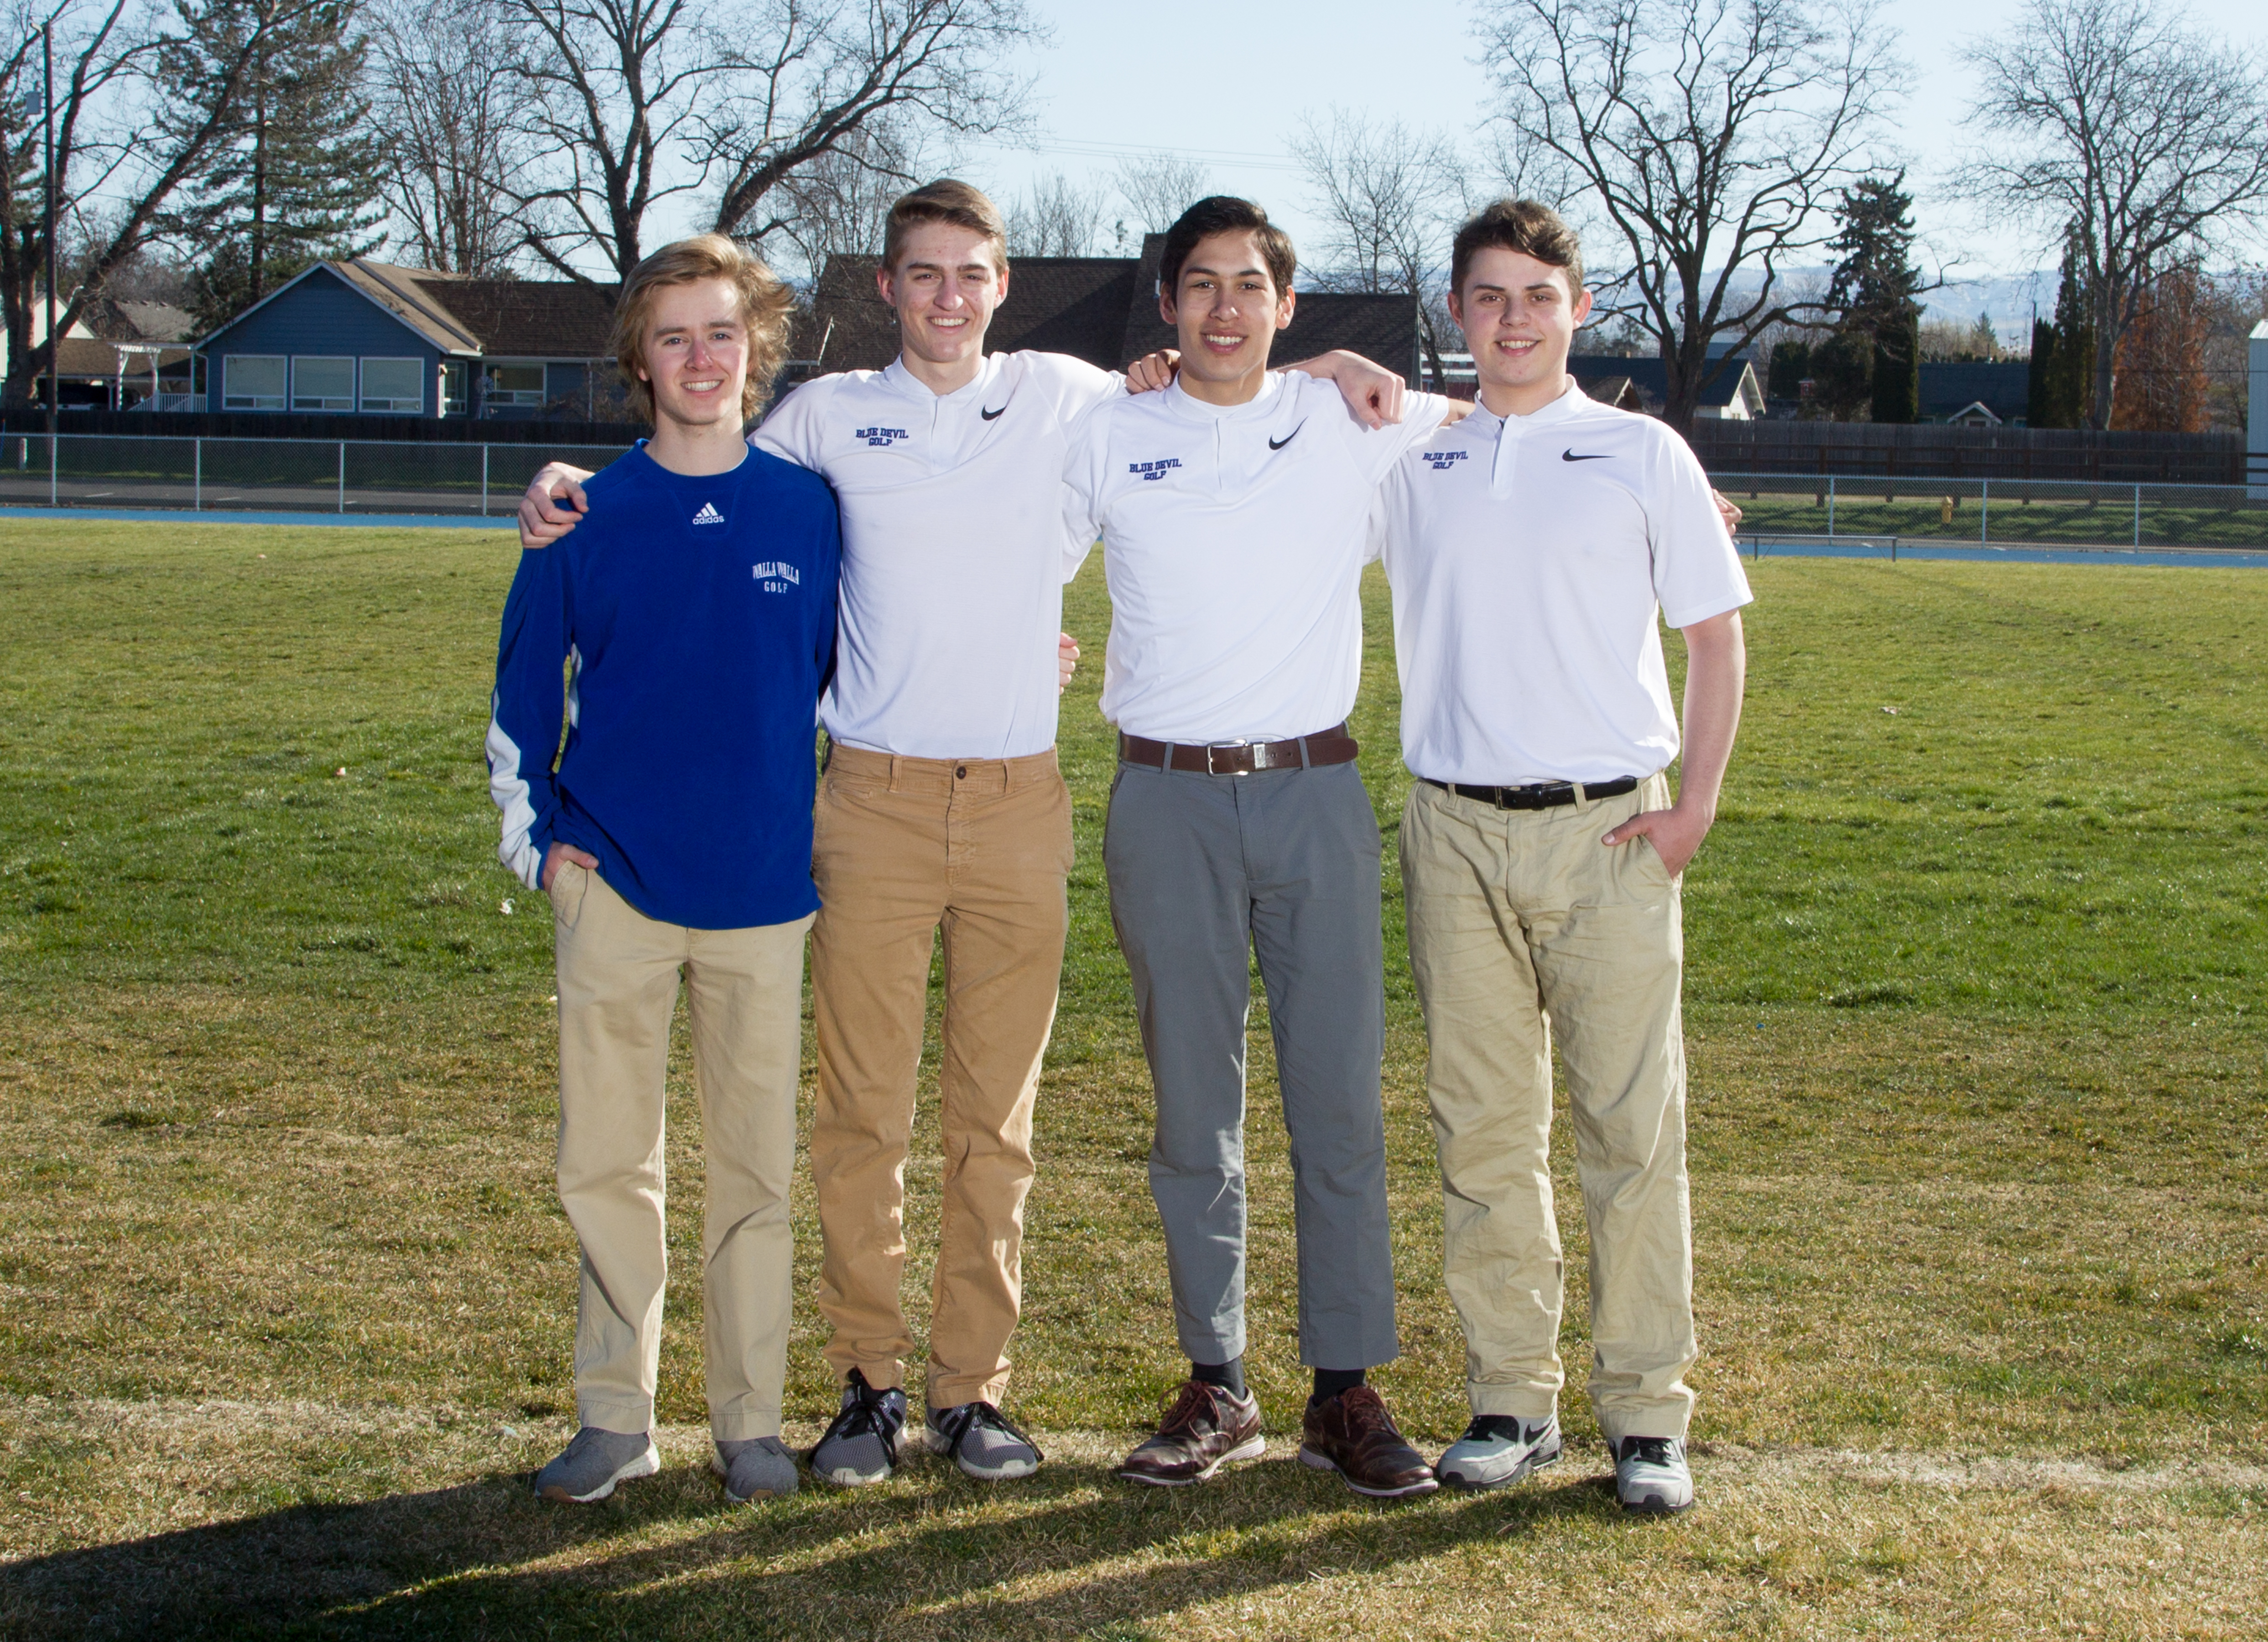 images/athletics/Golf/Golf_Seniors_2018.jpg